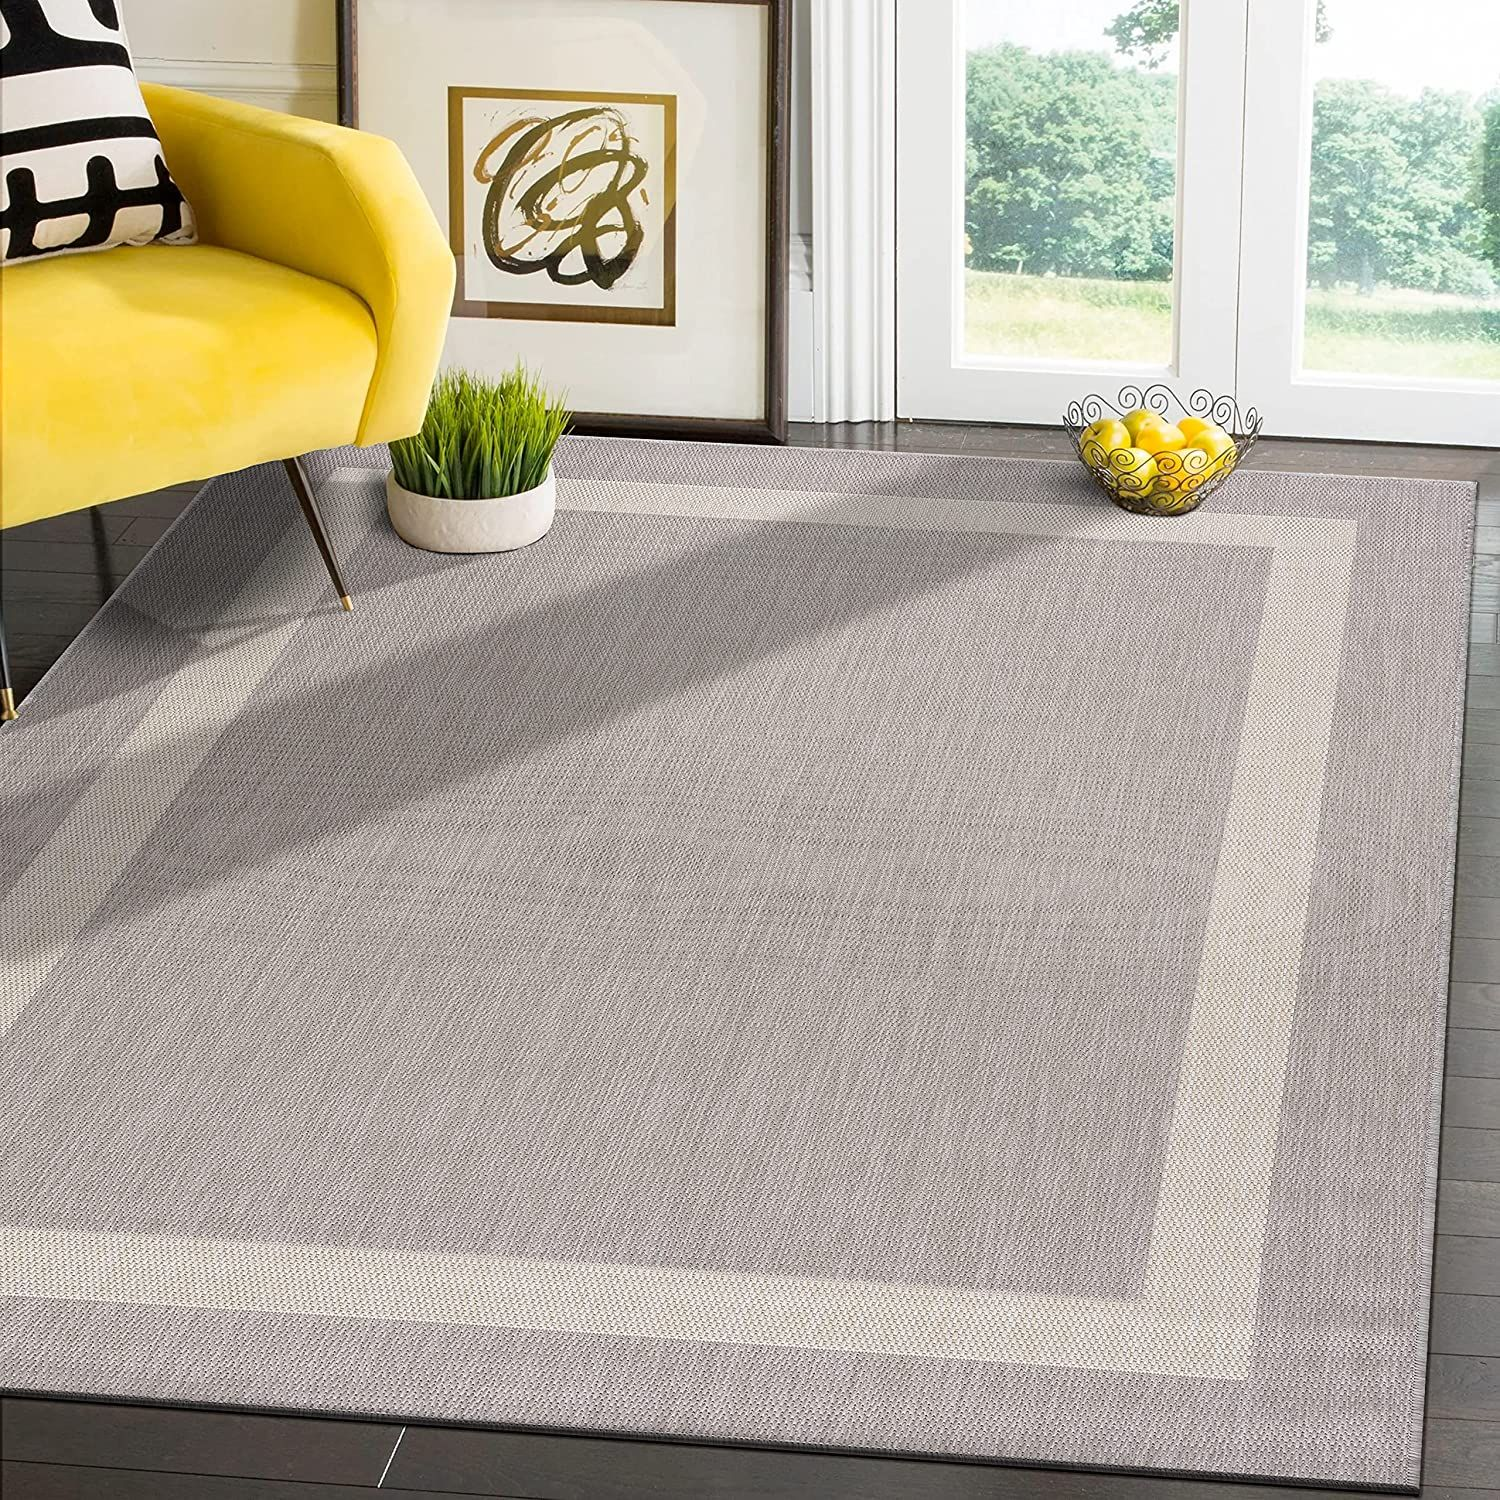 Modern Area Rugs for Indoor/ Outdoor Bordered   Grey / White   8x10 Gallery